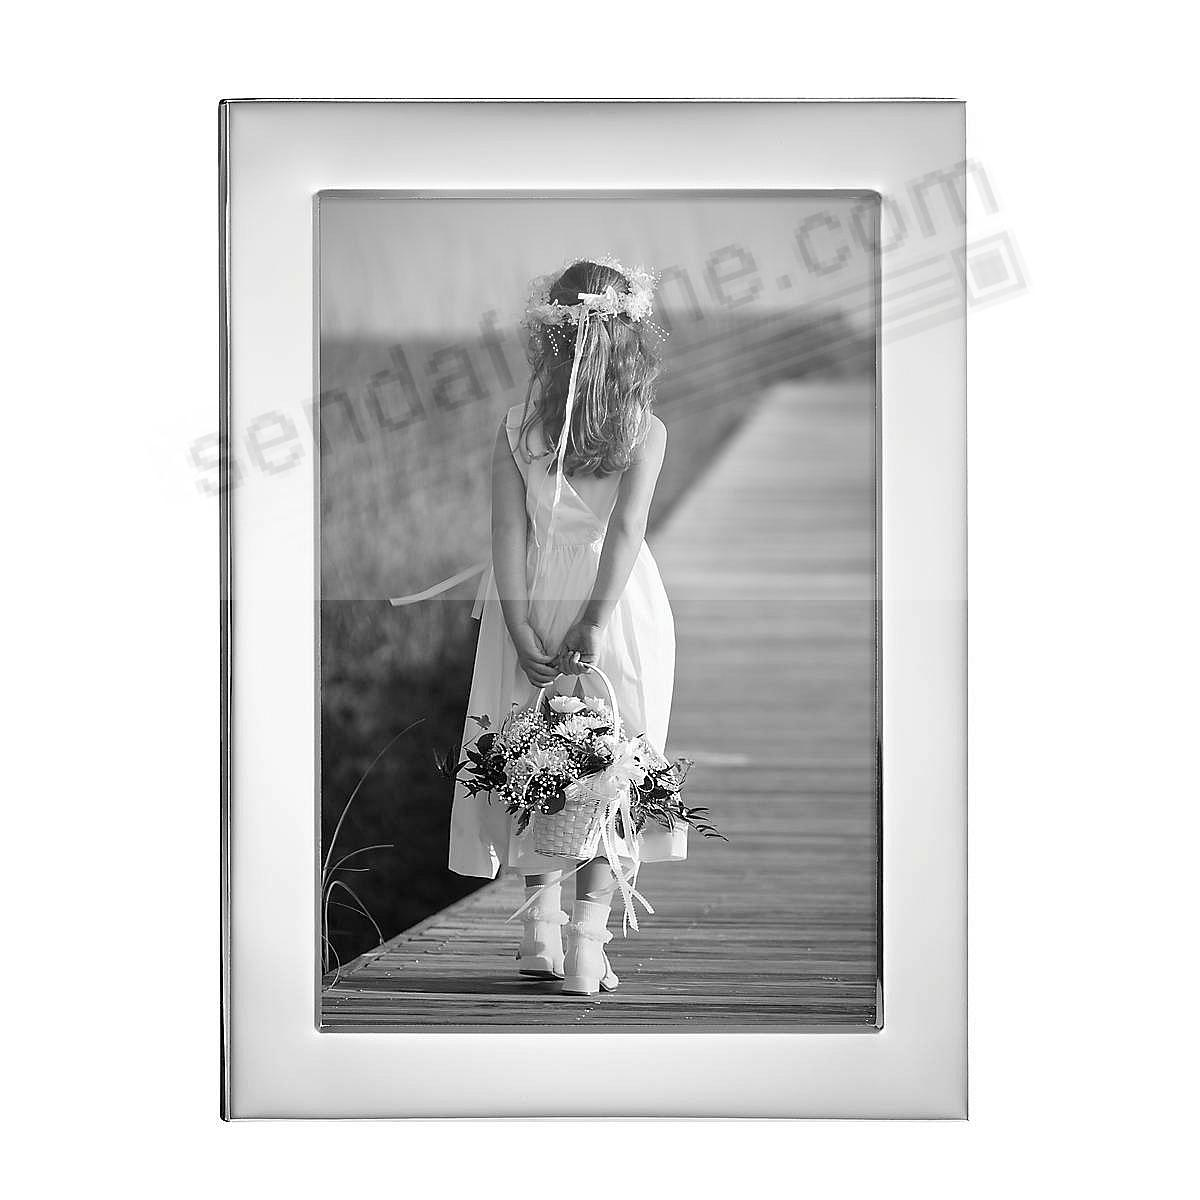 Reed & Barton® Narrow Border Silver 5x7 frame - Engraveable